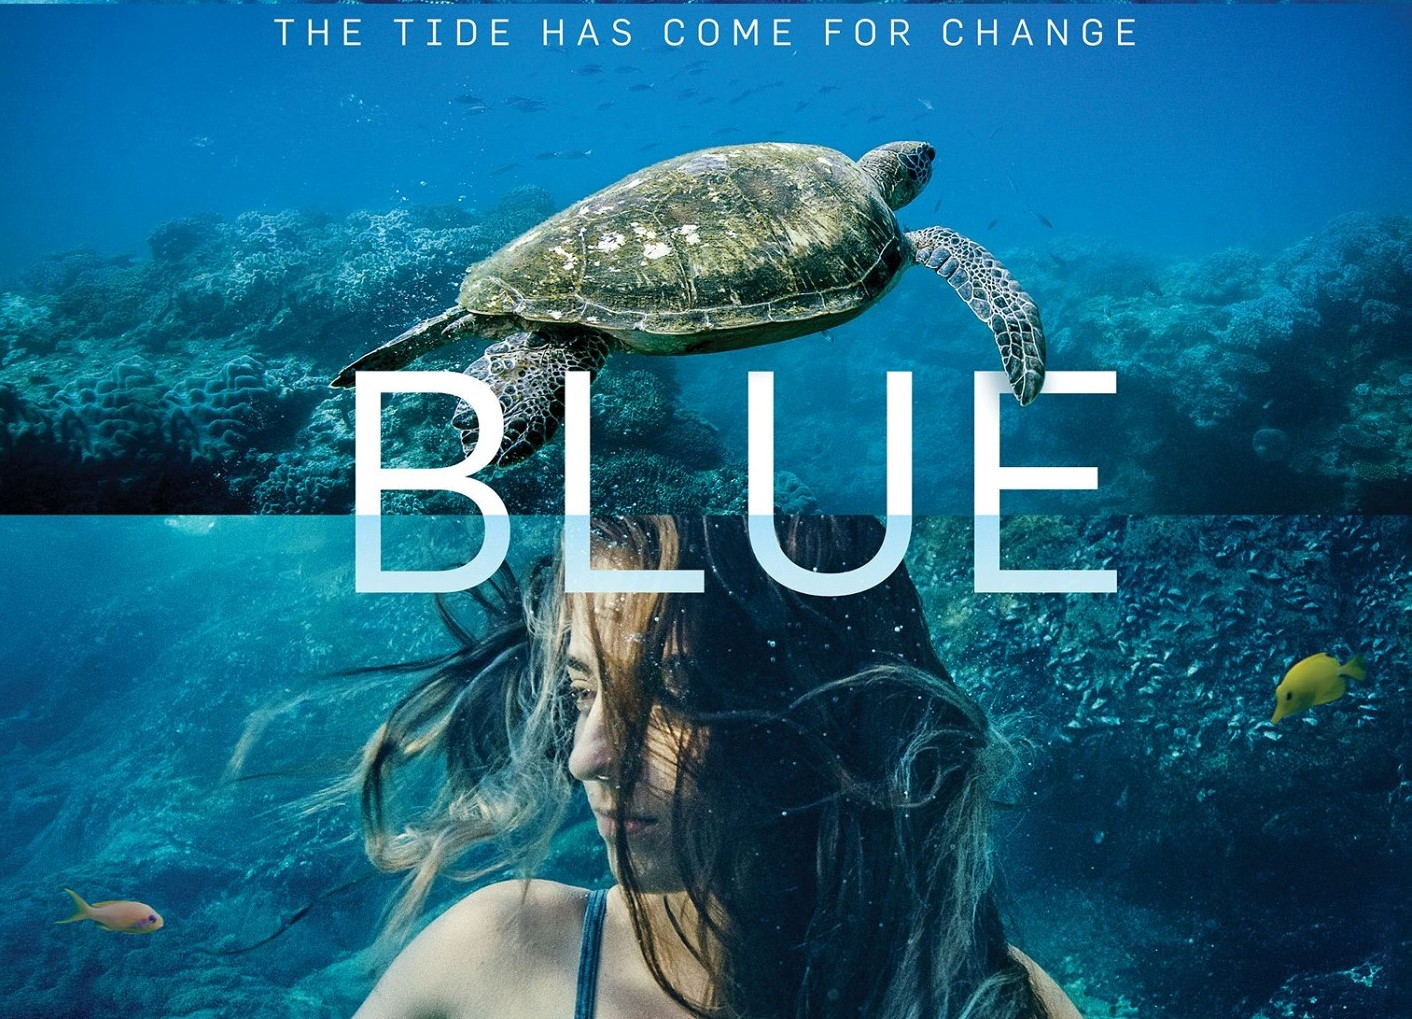 B L U E  T H E  F I L M   Tim features as one of seven ocean guardians in this 2017 blockbuster documentary. Through the eyes of Tim, viewers learn about the perils of plastic pollution and the breadth of solutions required to save our oceans. Blue continues to be screened in film festivals and community events around the world.